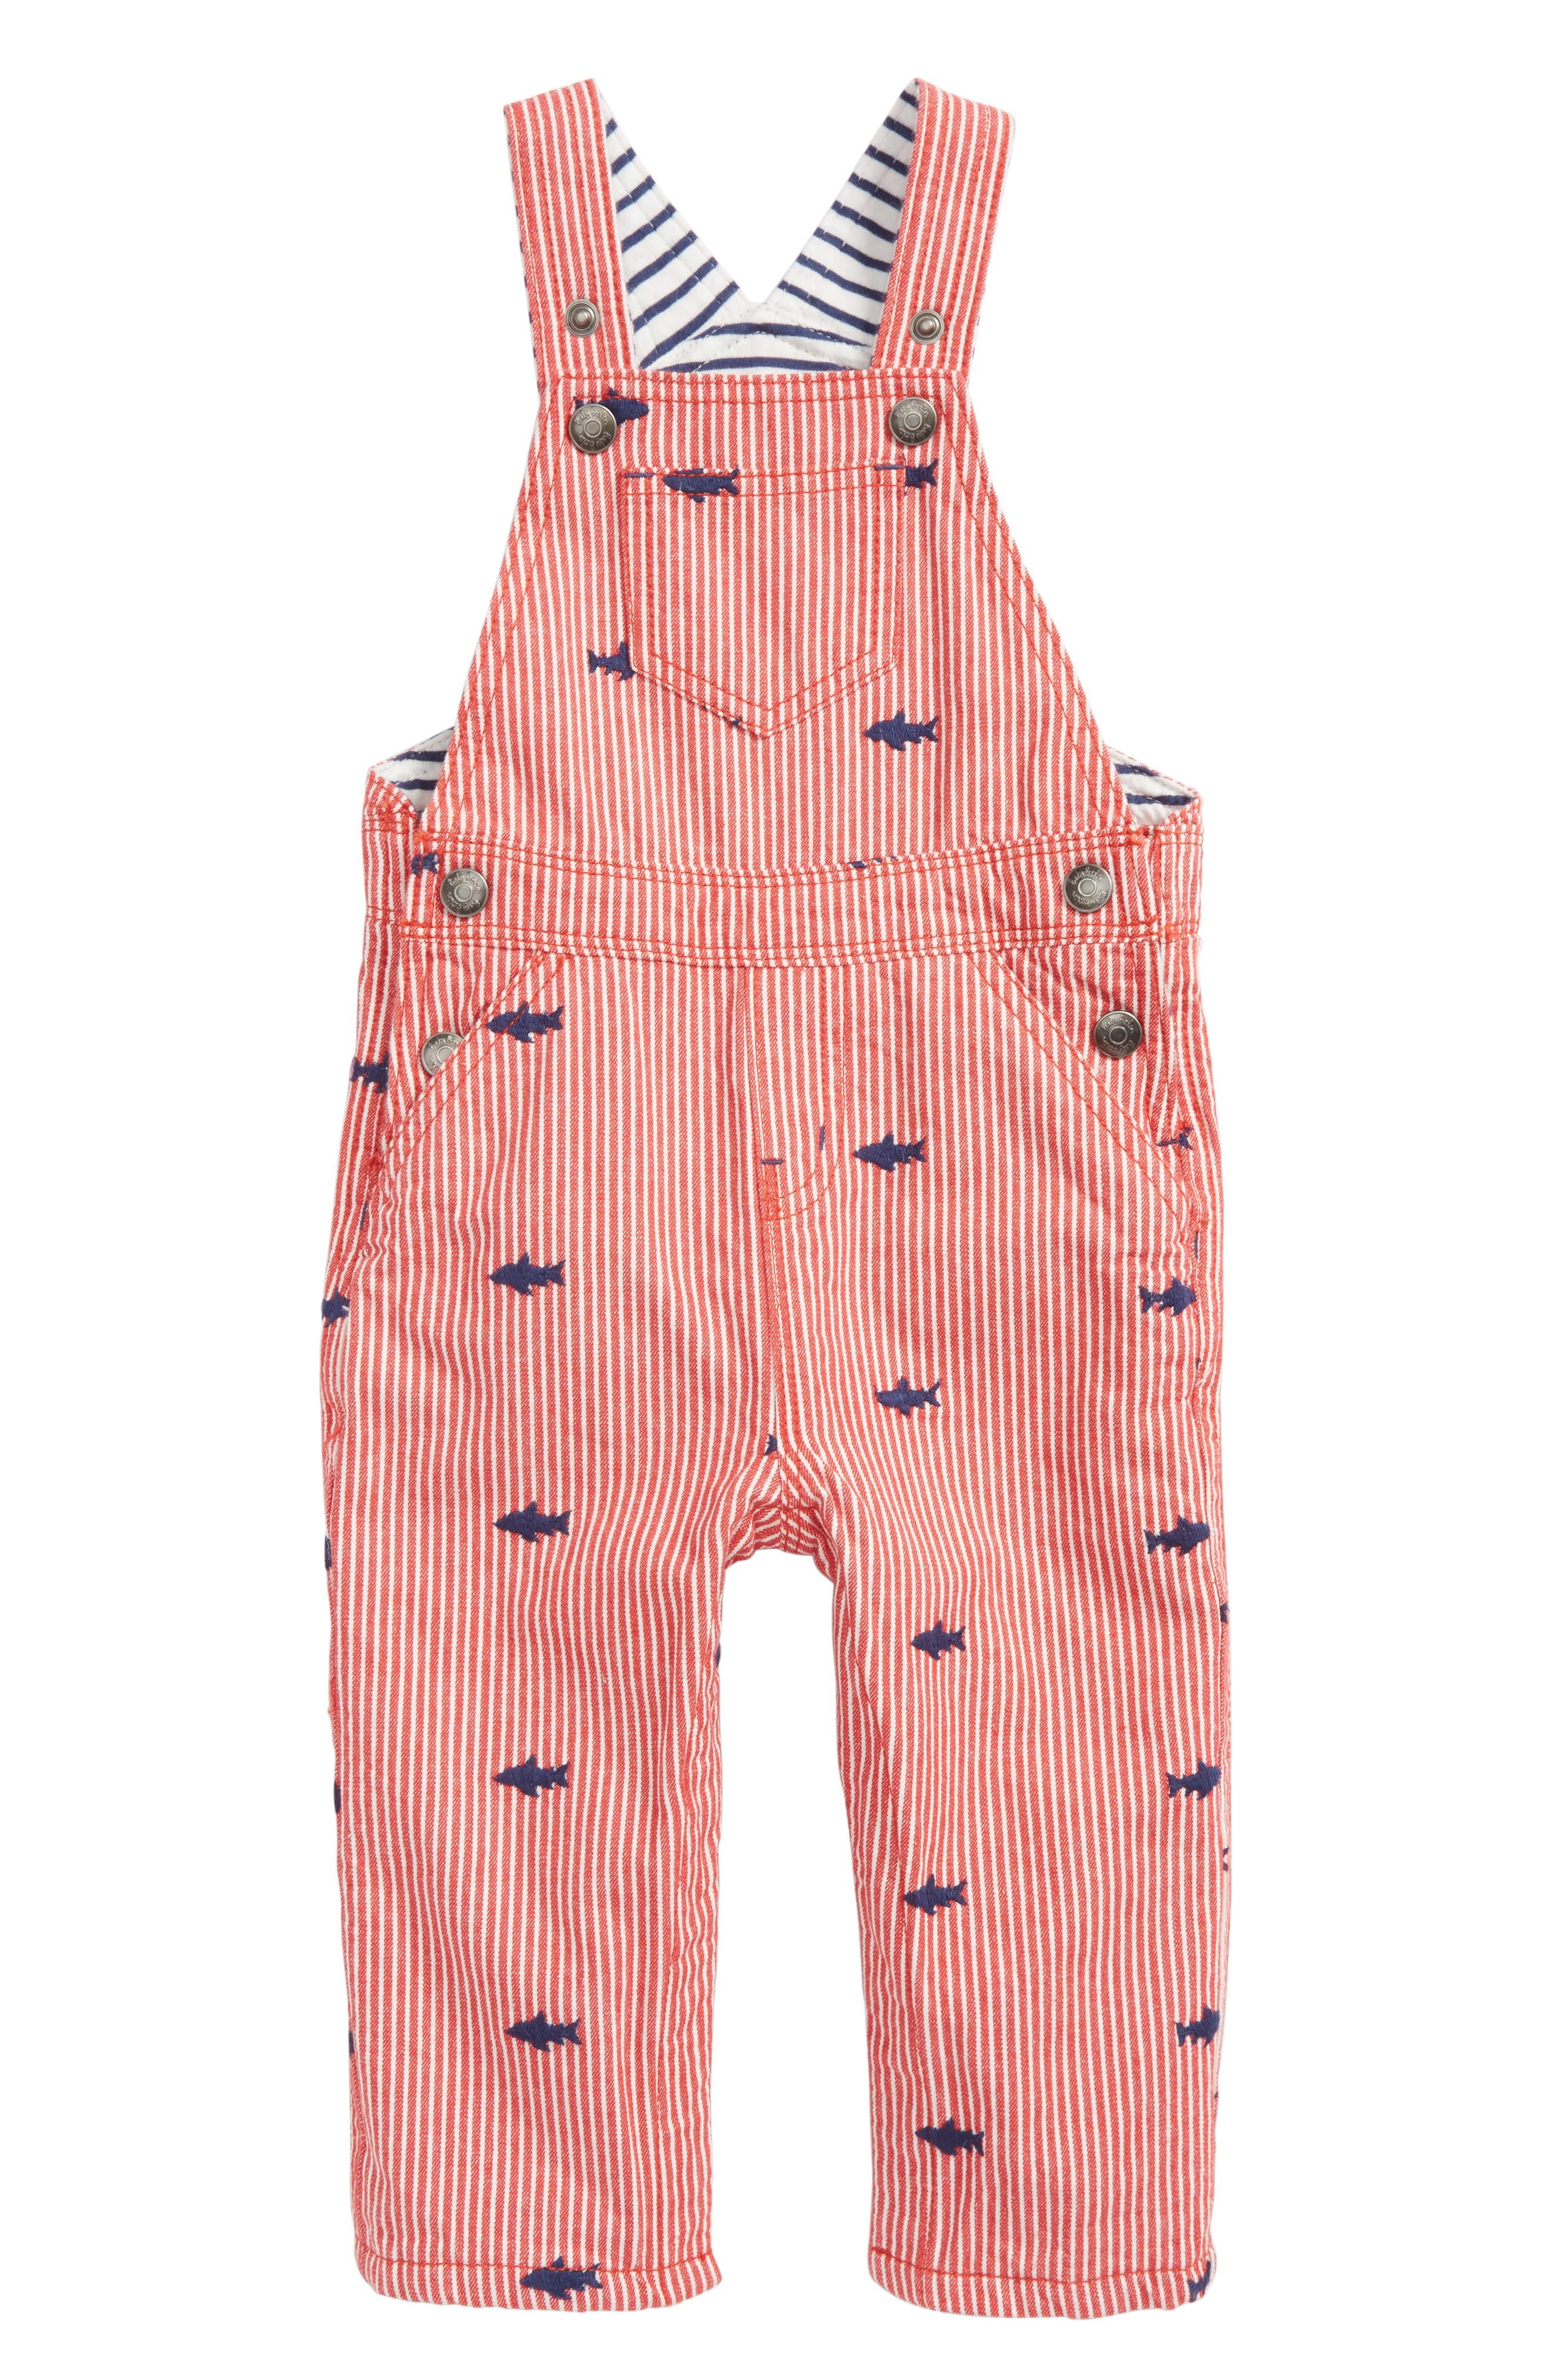 Classic Dungaree Overalls,                         Main,                         color, Salsa Red Ticking Stripe